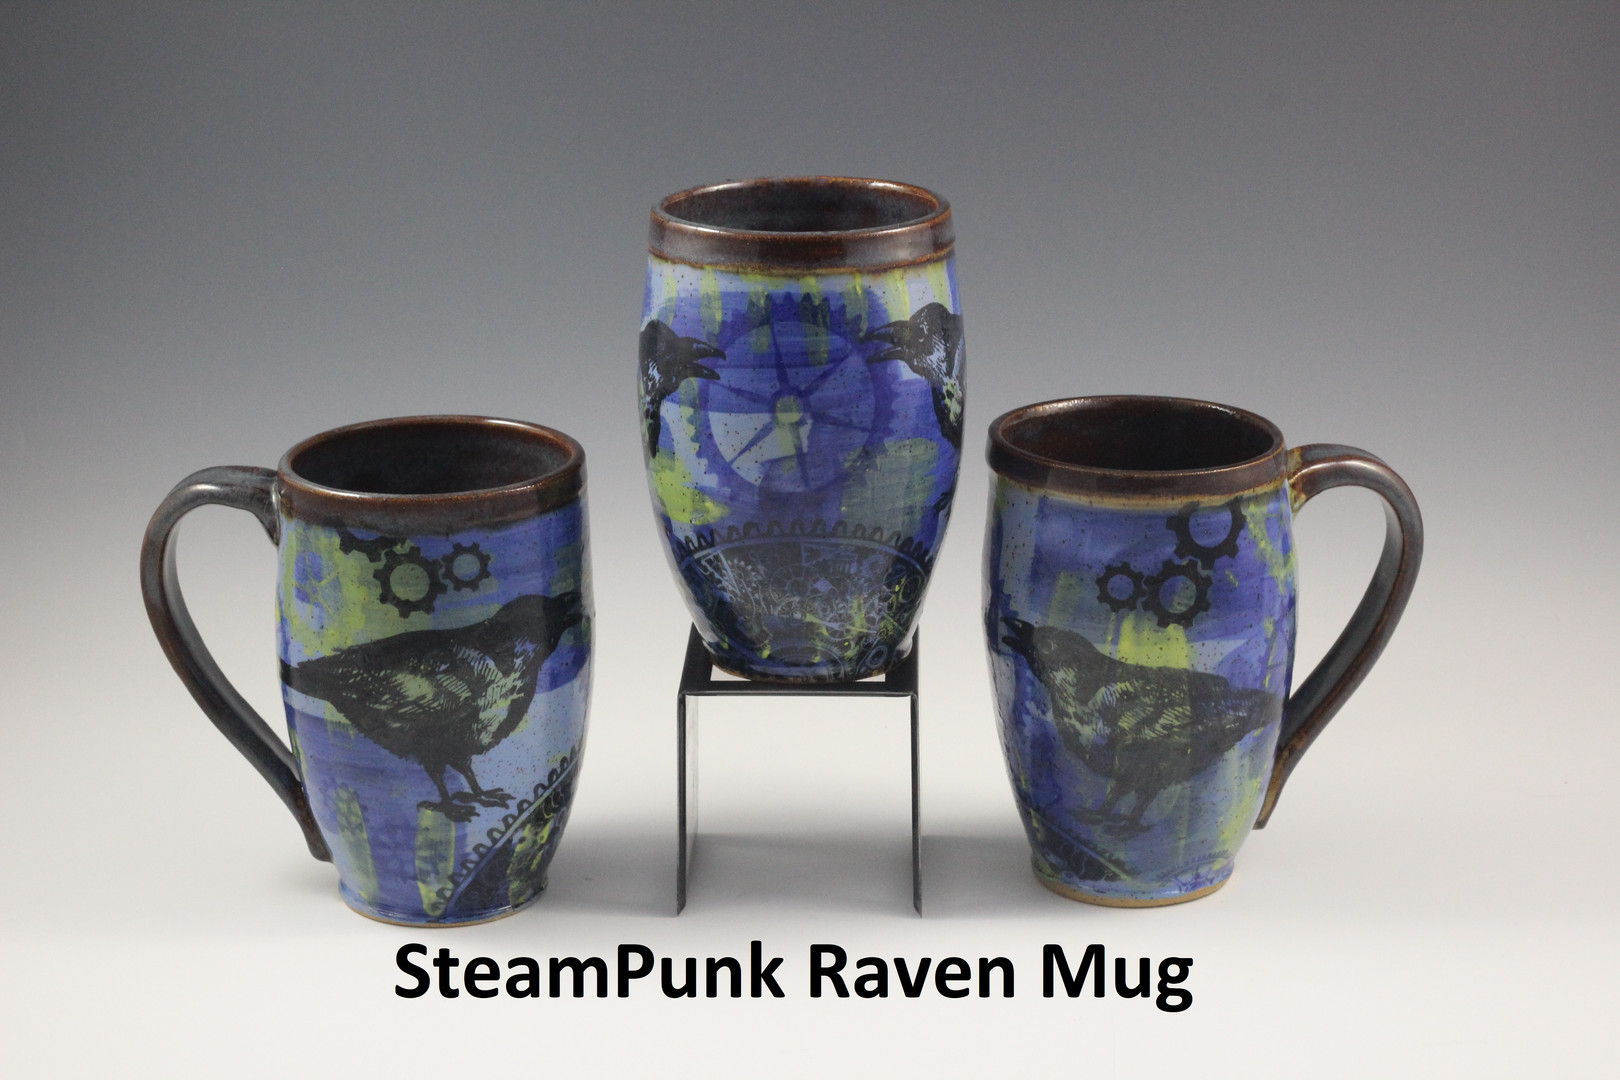 SteamPunk Raven Mugs